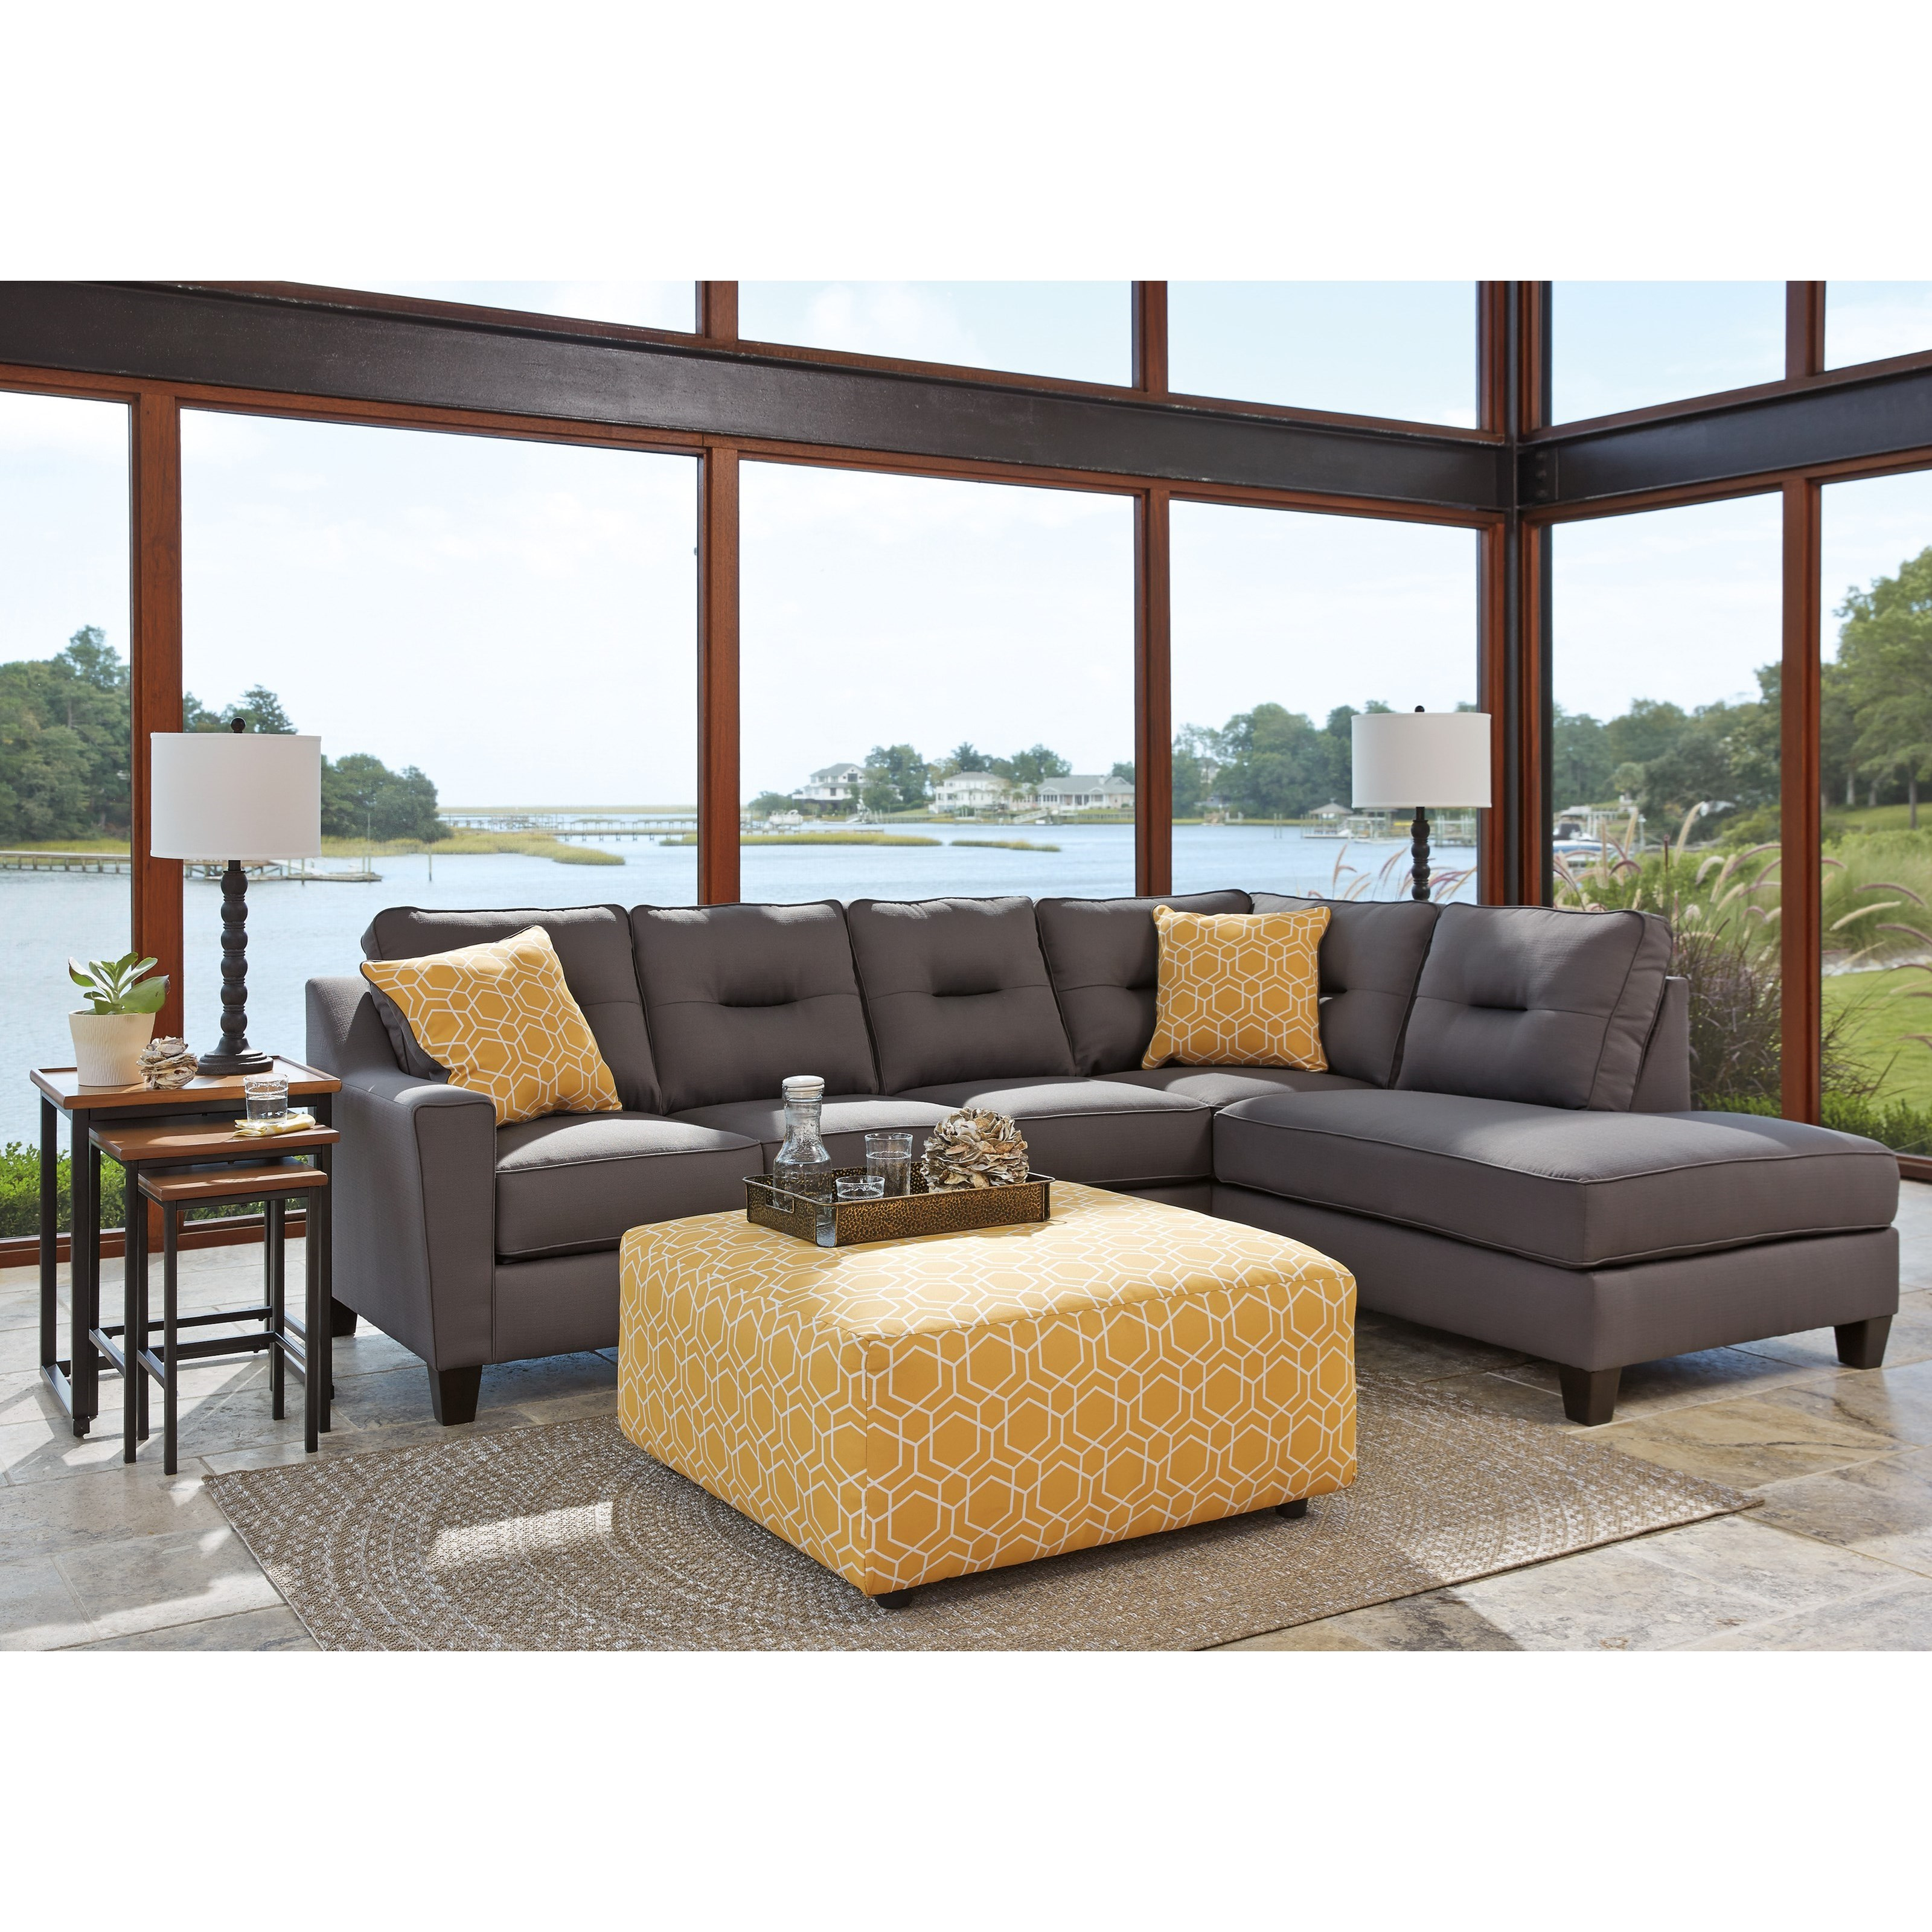 Benchcraft kirwin nuvella stationary living room group for Living room furniture groups